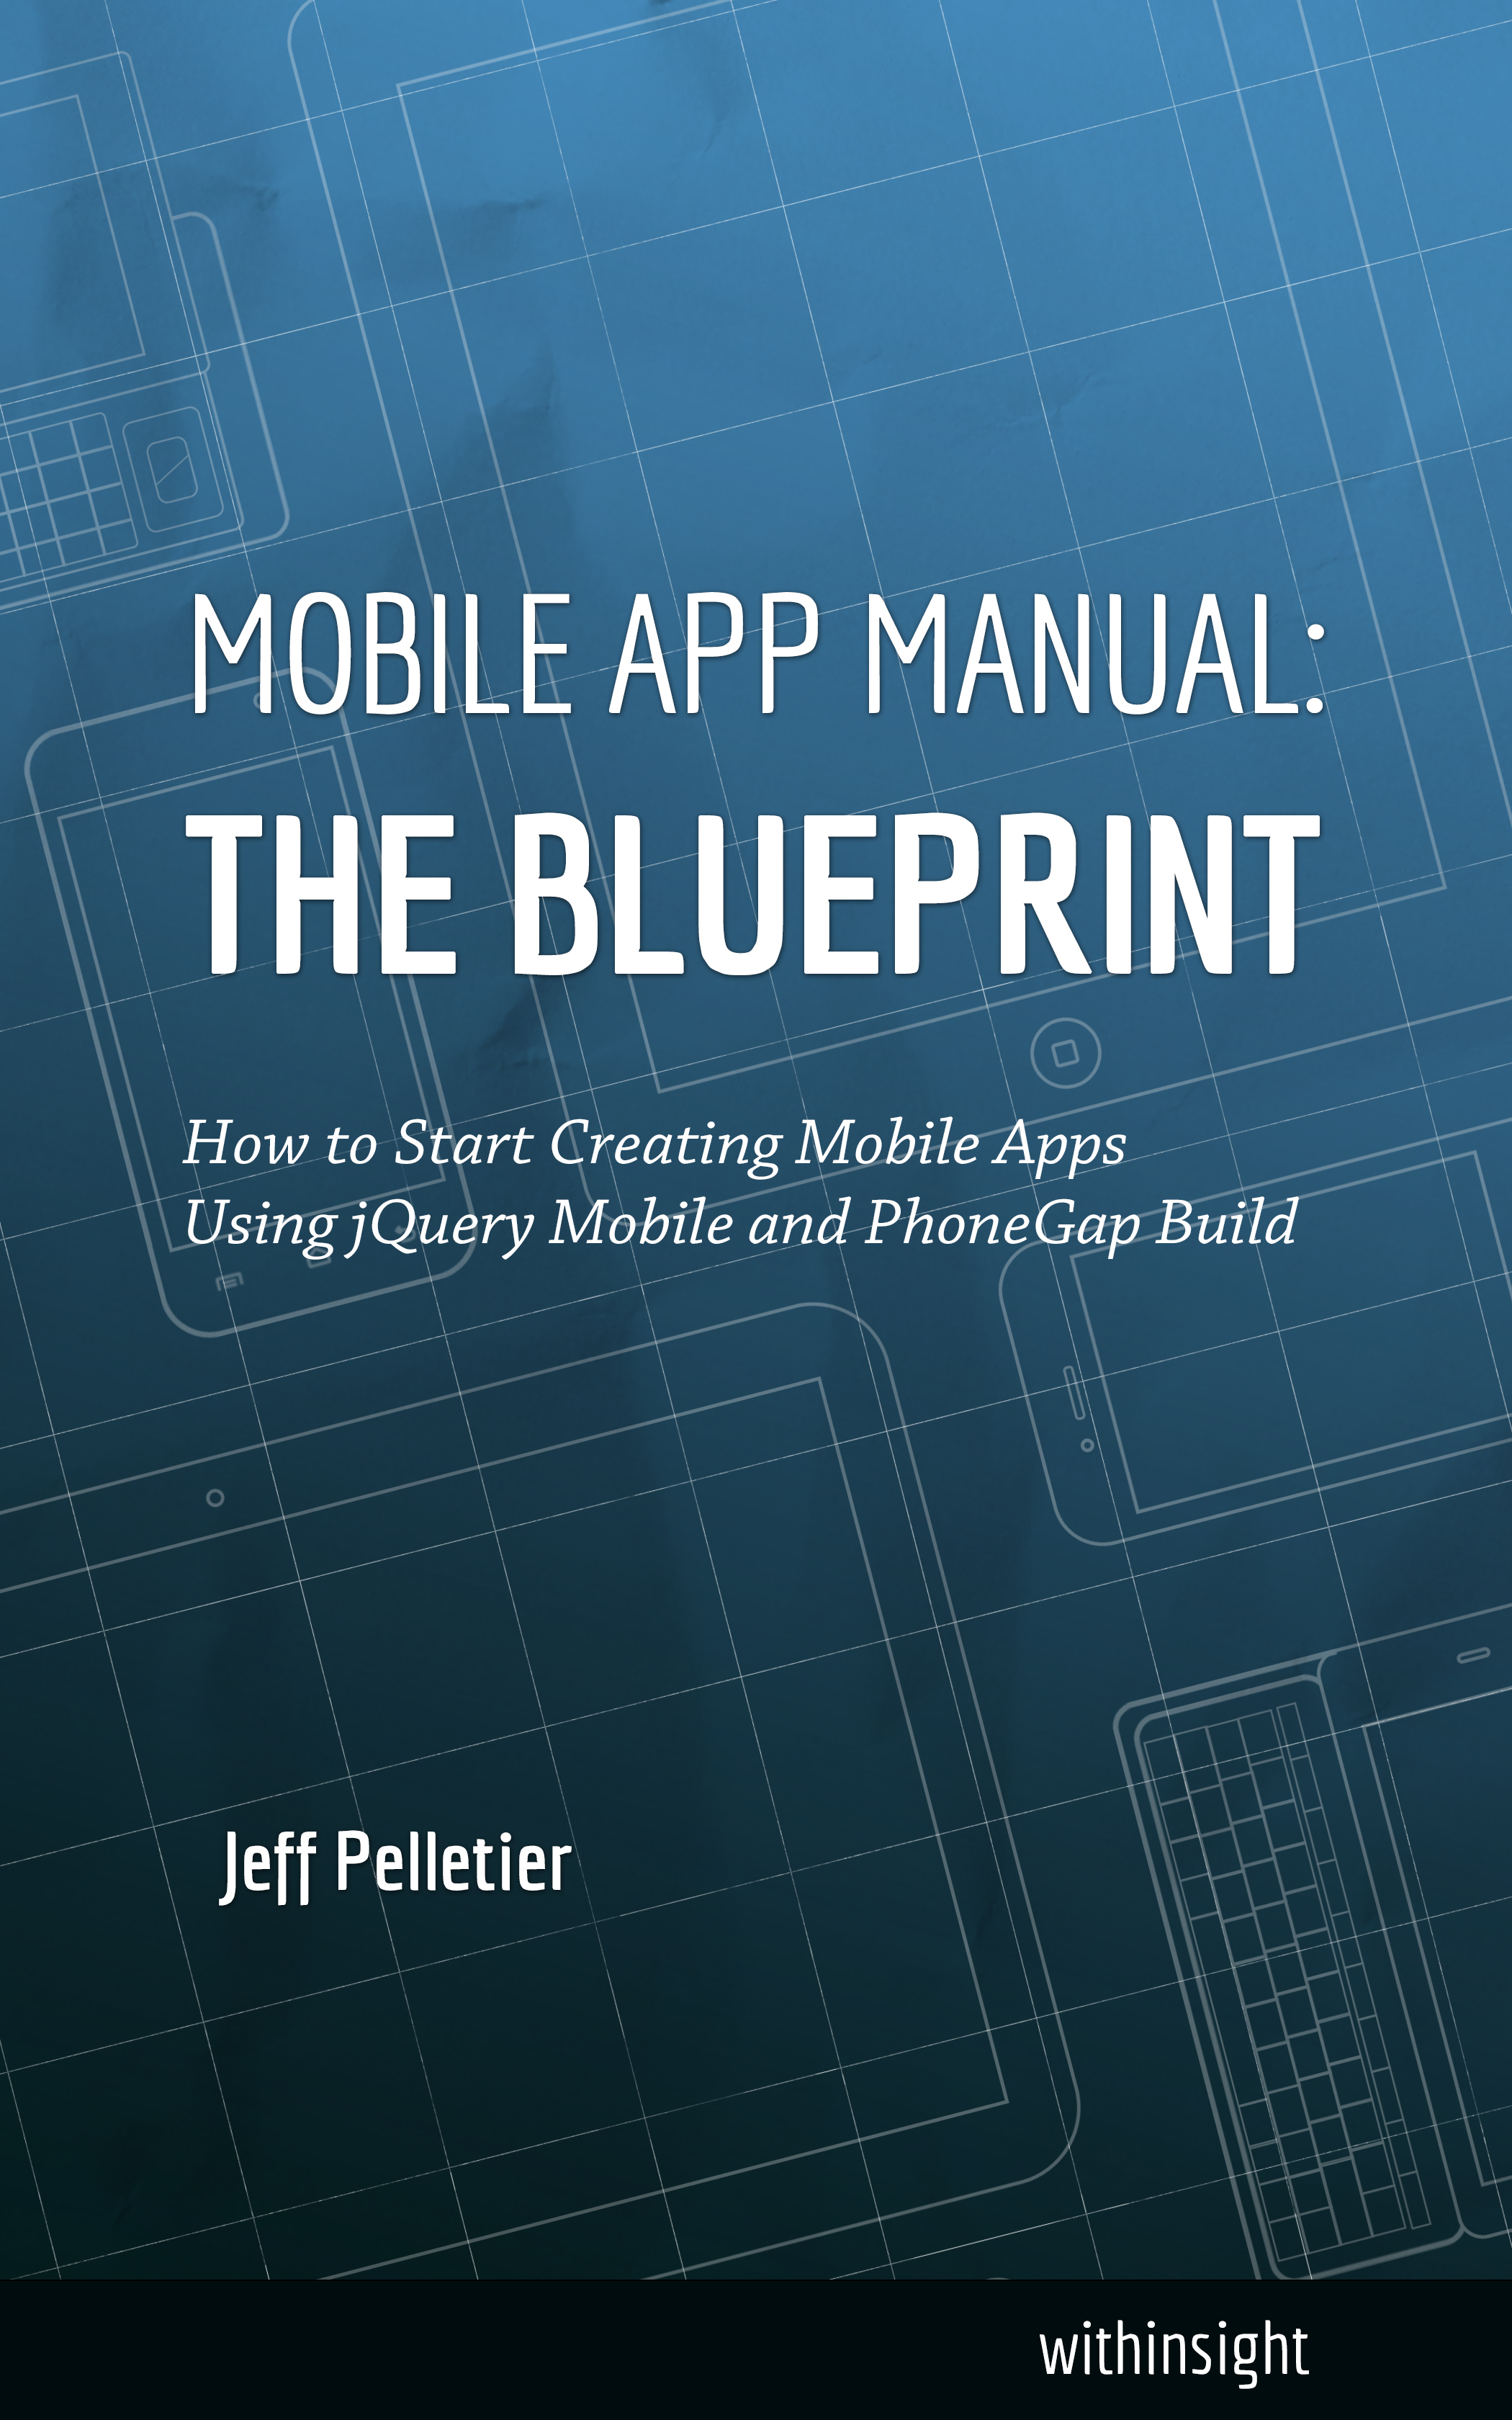 Mobile App Manual: The Blueprint